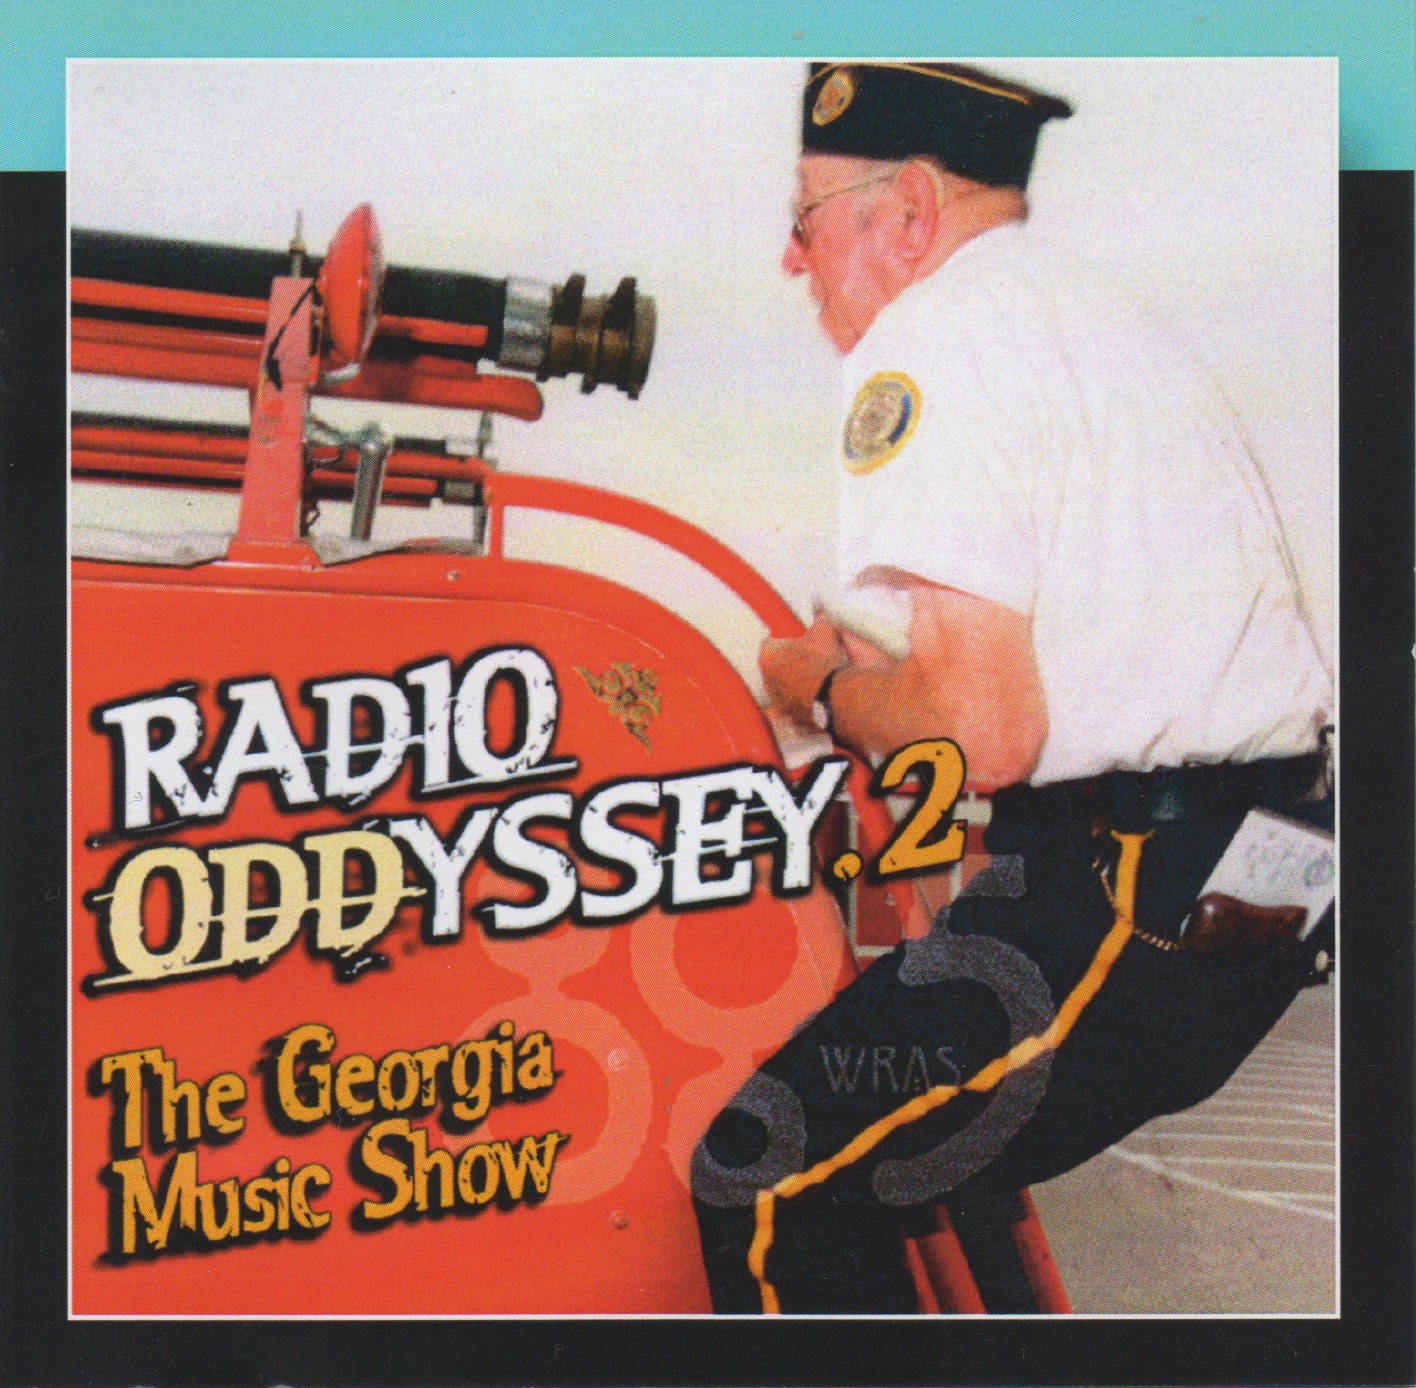 Photo of 89-year-old firefighter in Galesburg featured on WRAS's Georgia Music Show compilation, Radio Odyssey 2 (Ichiban Records, 2006)